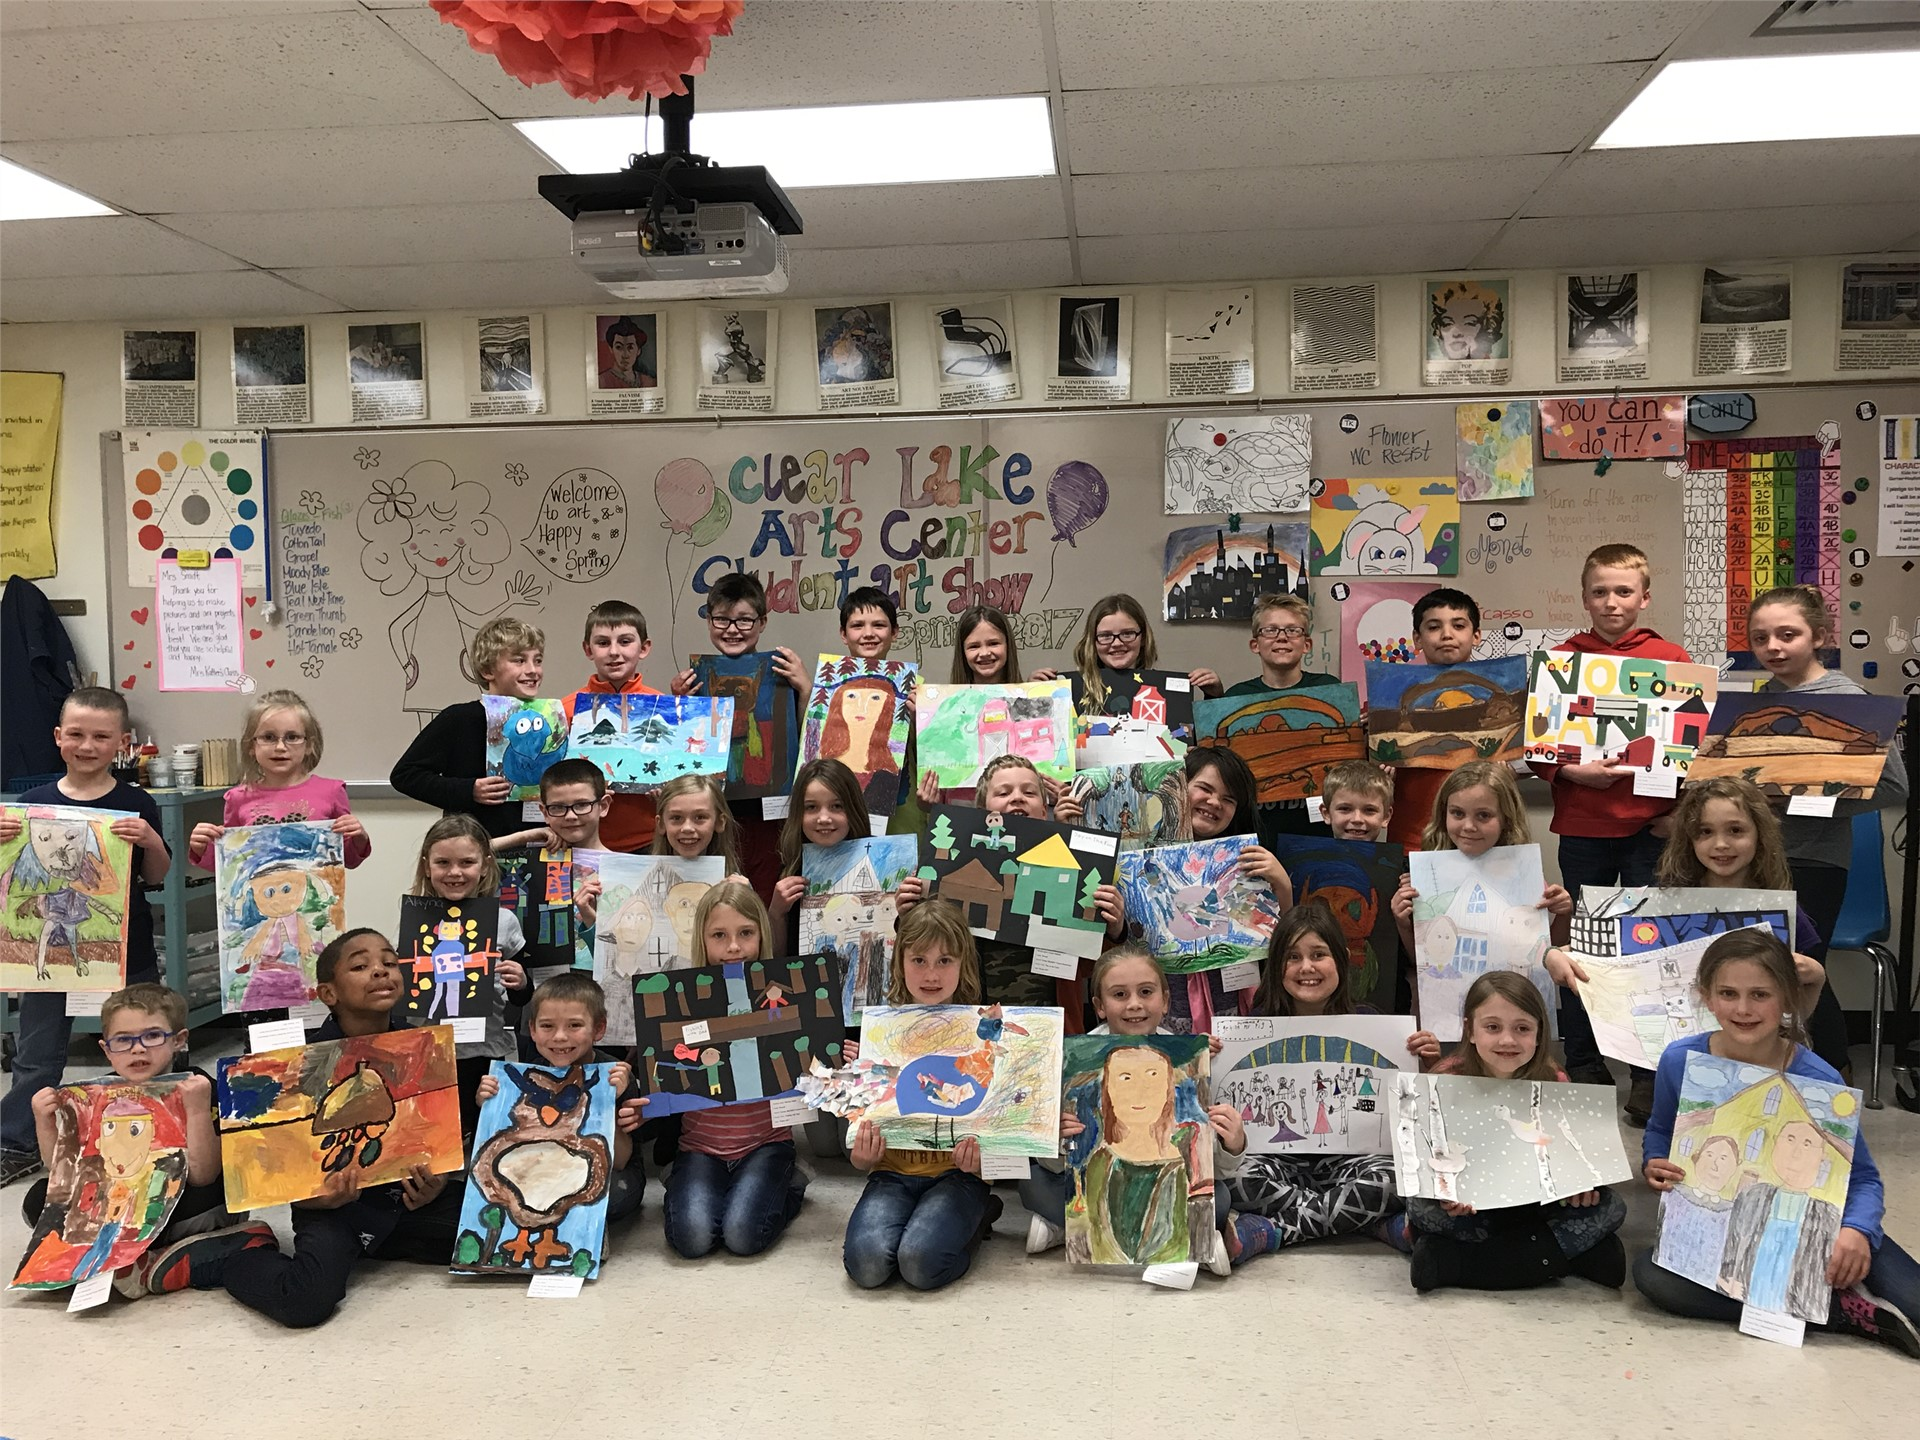 GHV Elementary artists: Clear Lake Arts Center Student Art Show